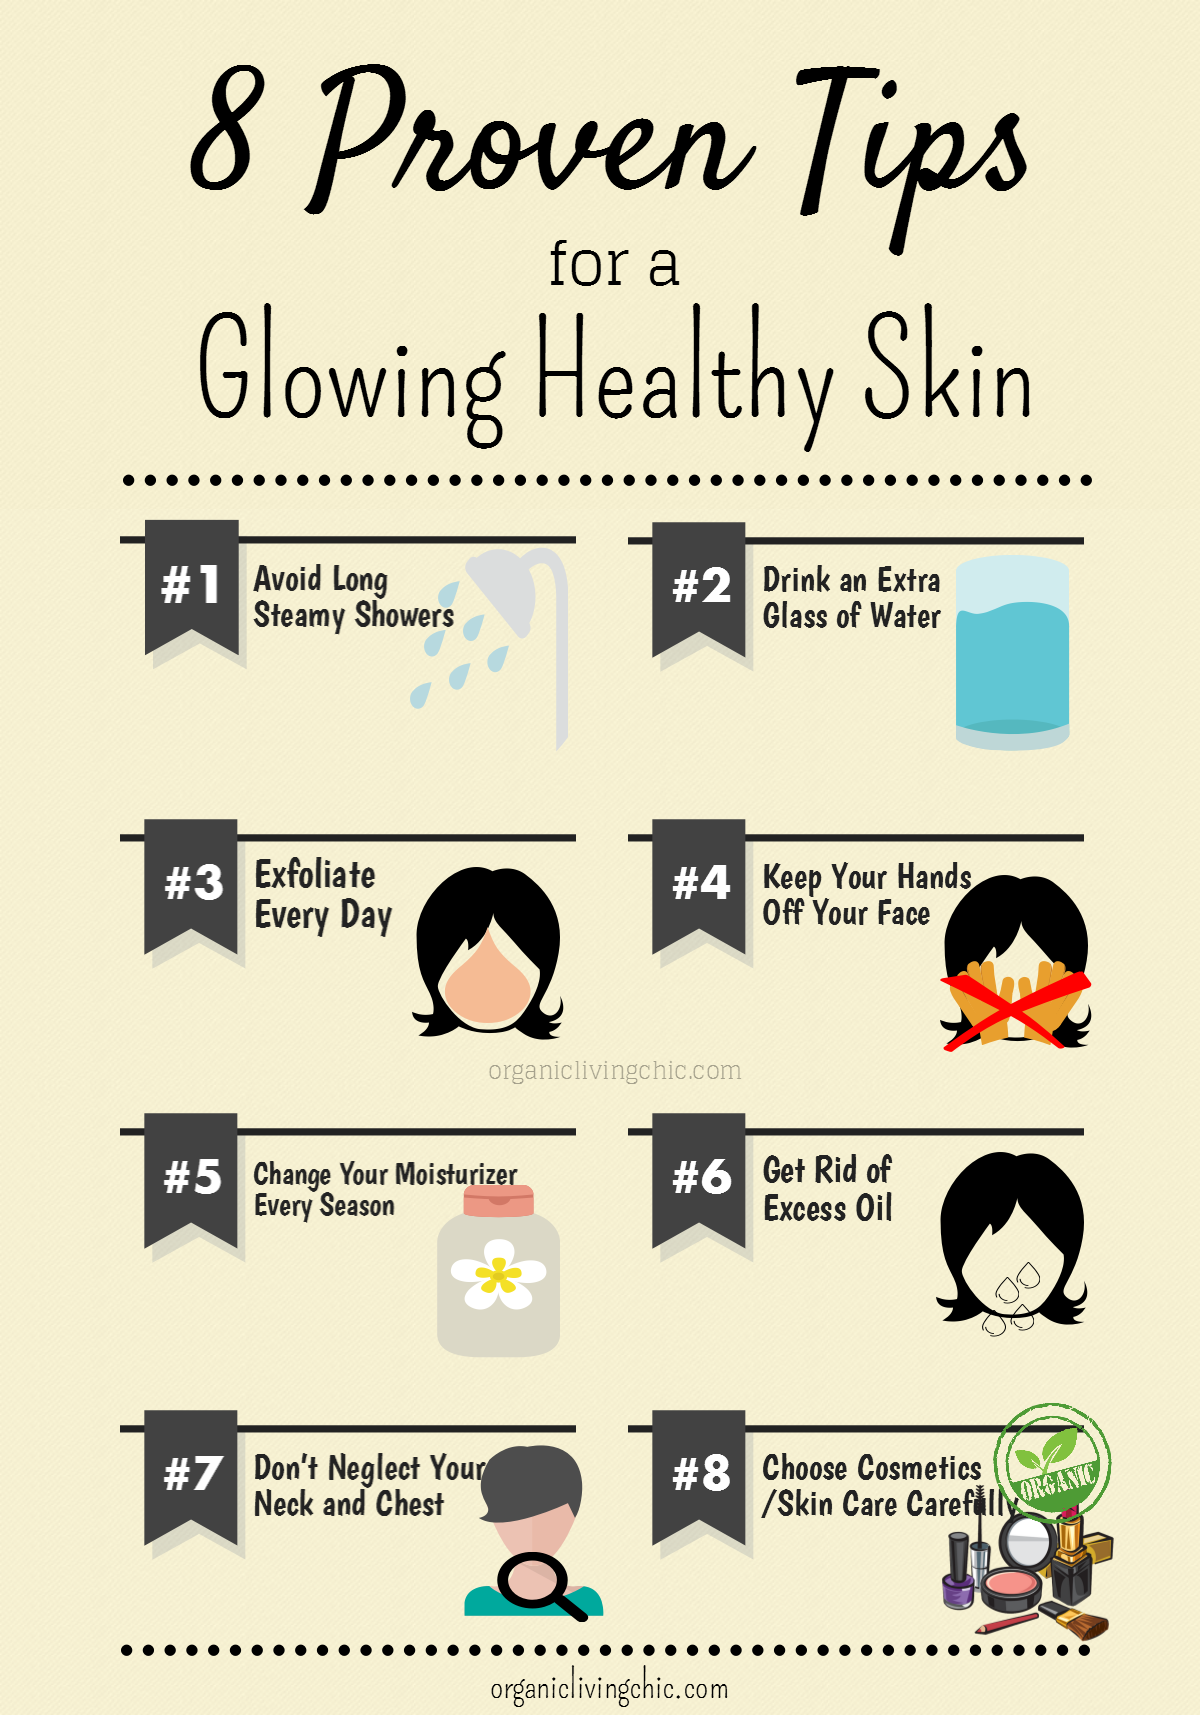 9 Proven Tips for a Glowing Healthy Skin  Visual.ly